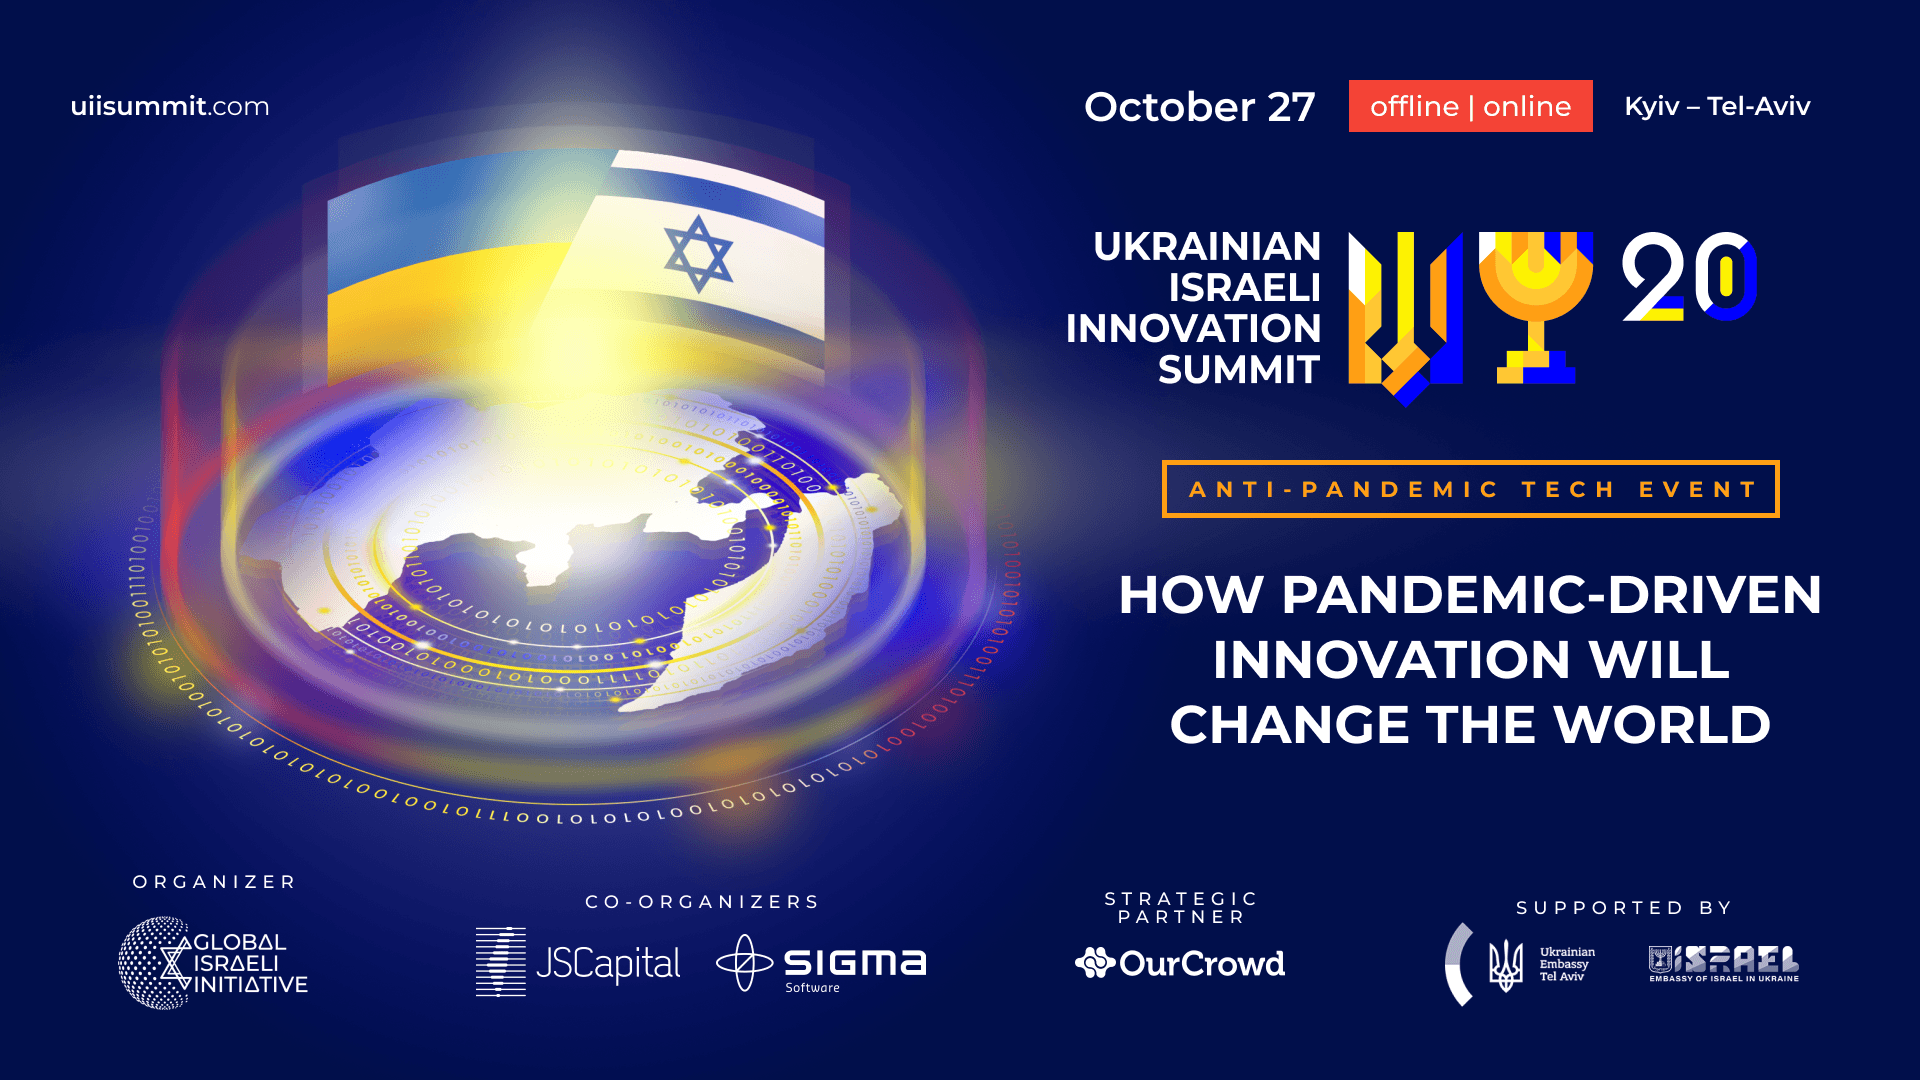 OURCROWD SUPPORTS UKRAINIAN ISRAELI INNOVATION SUMMIT 2020